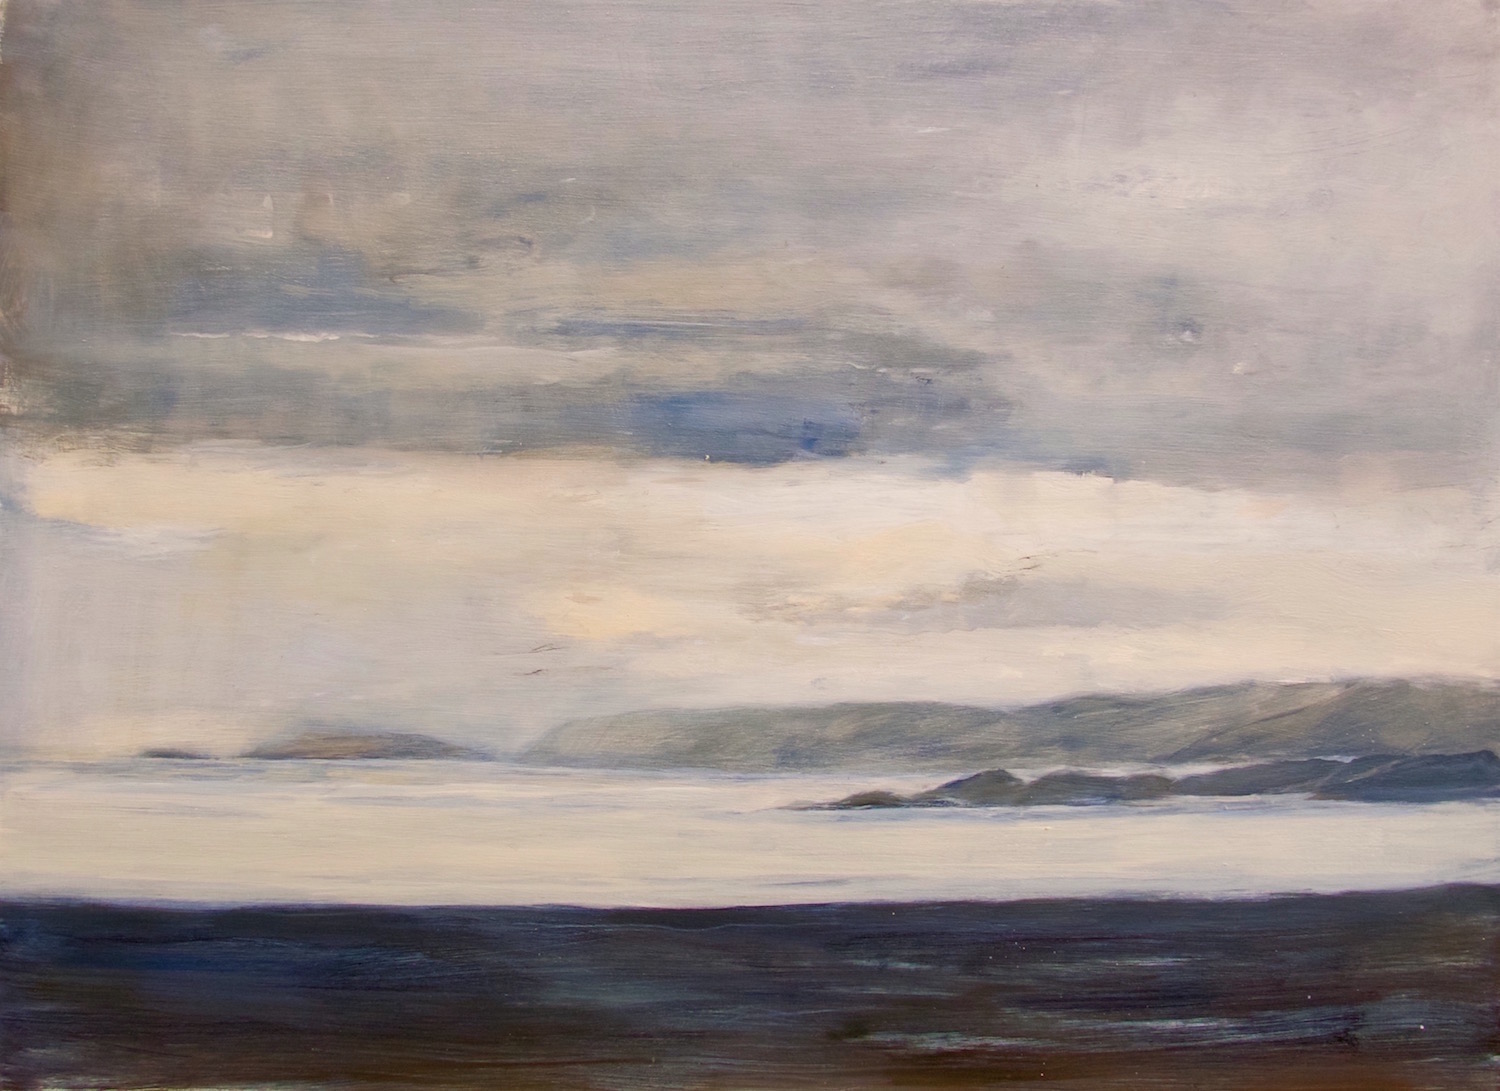 early morning, Iona   oil on gesso panel   35x49 cm